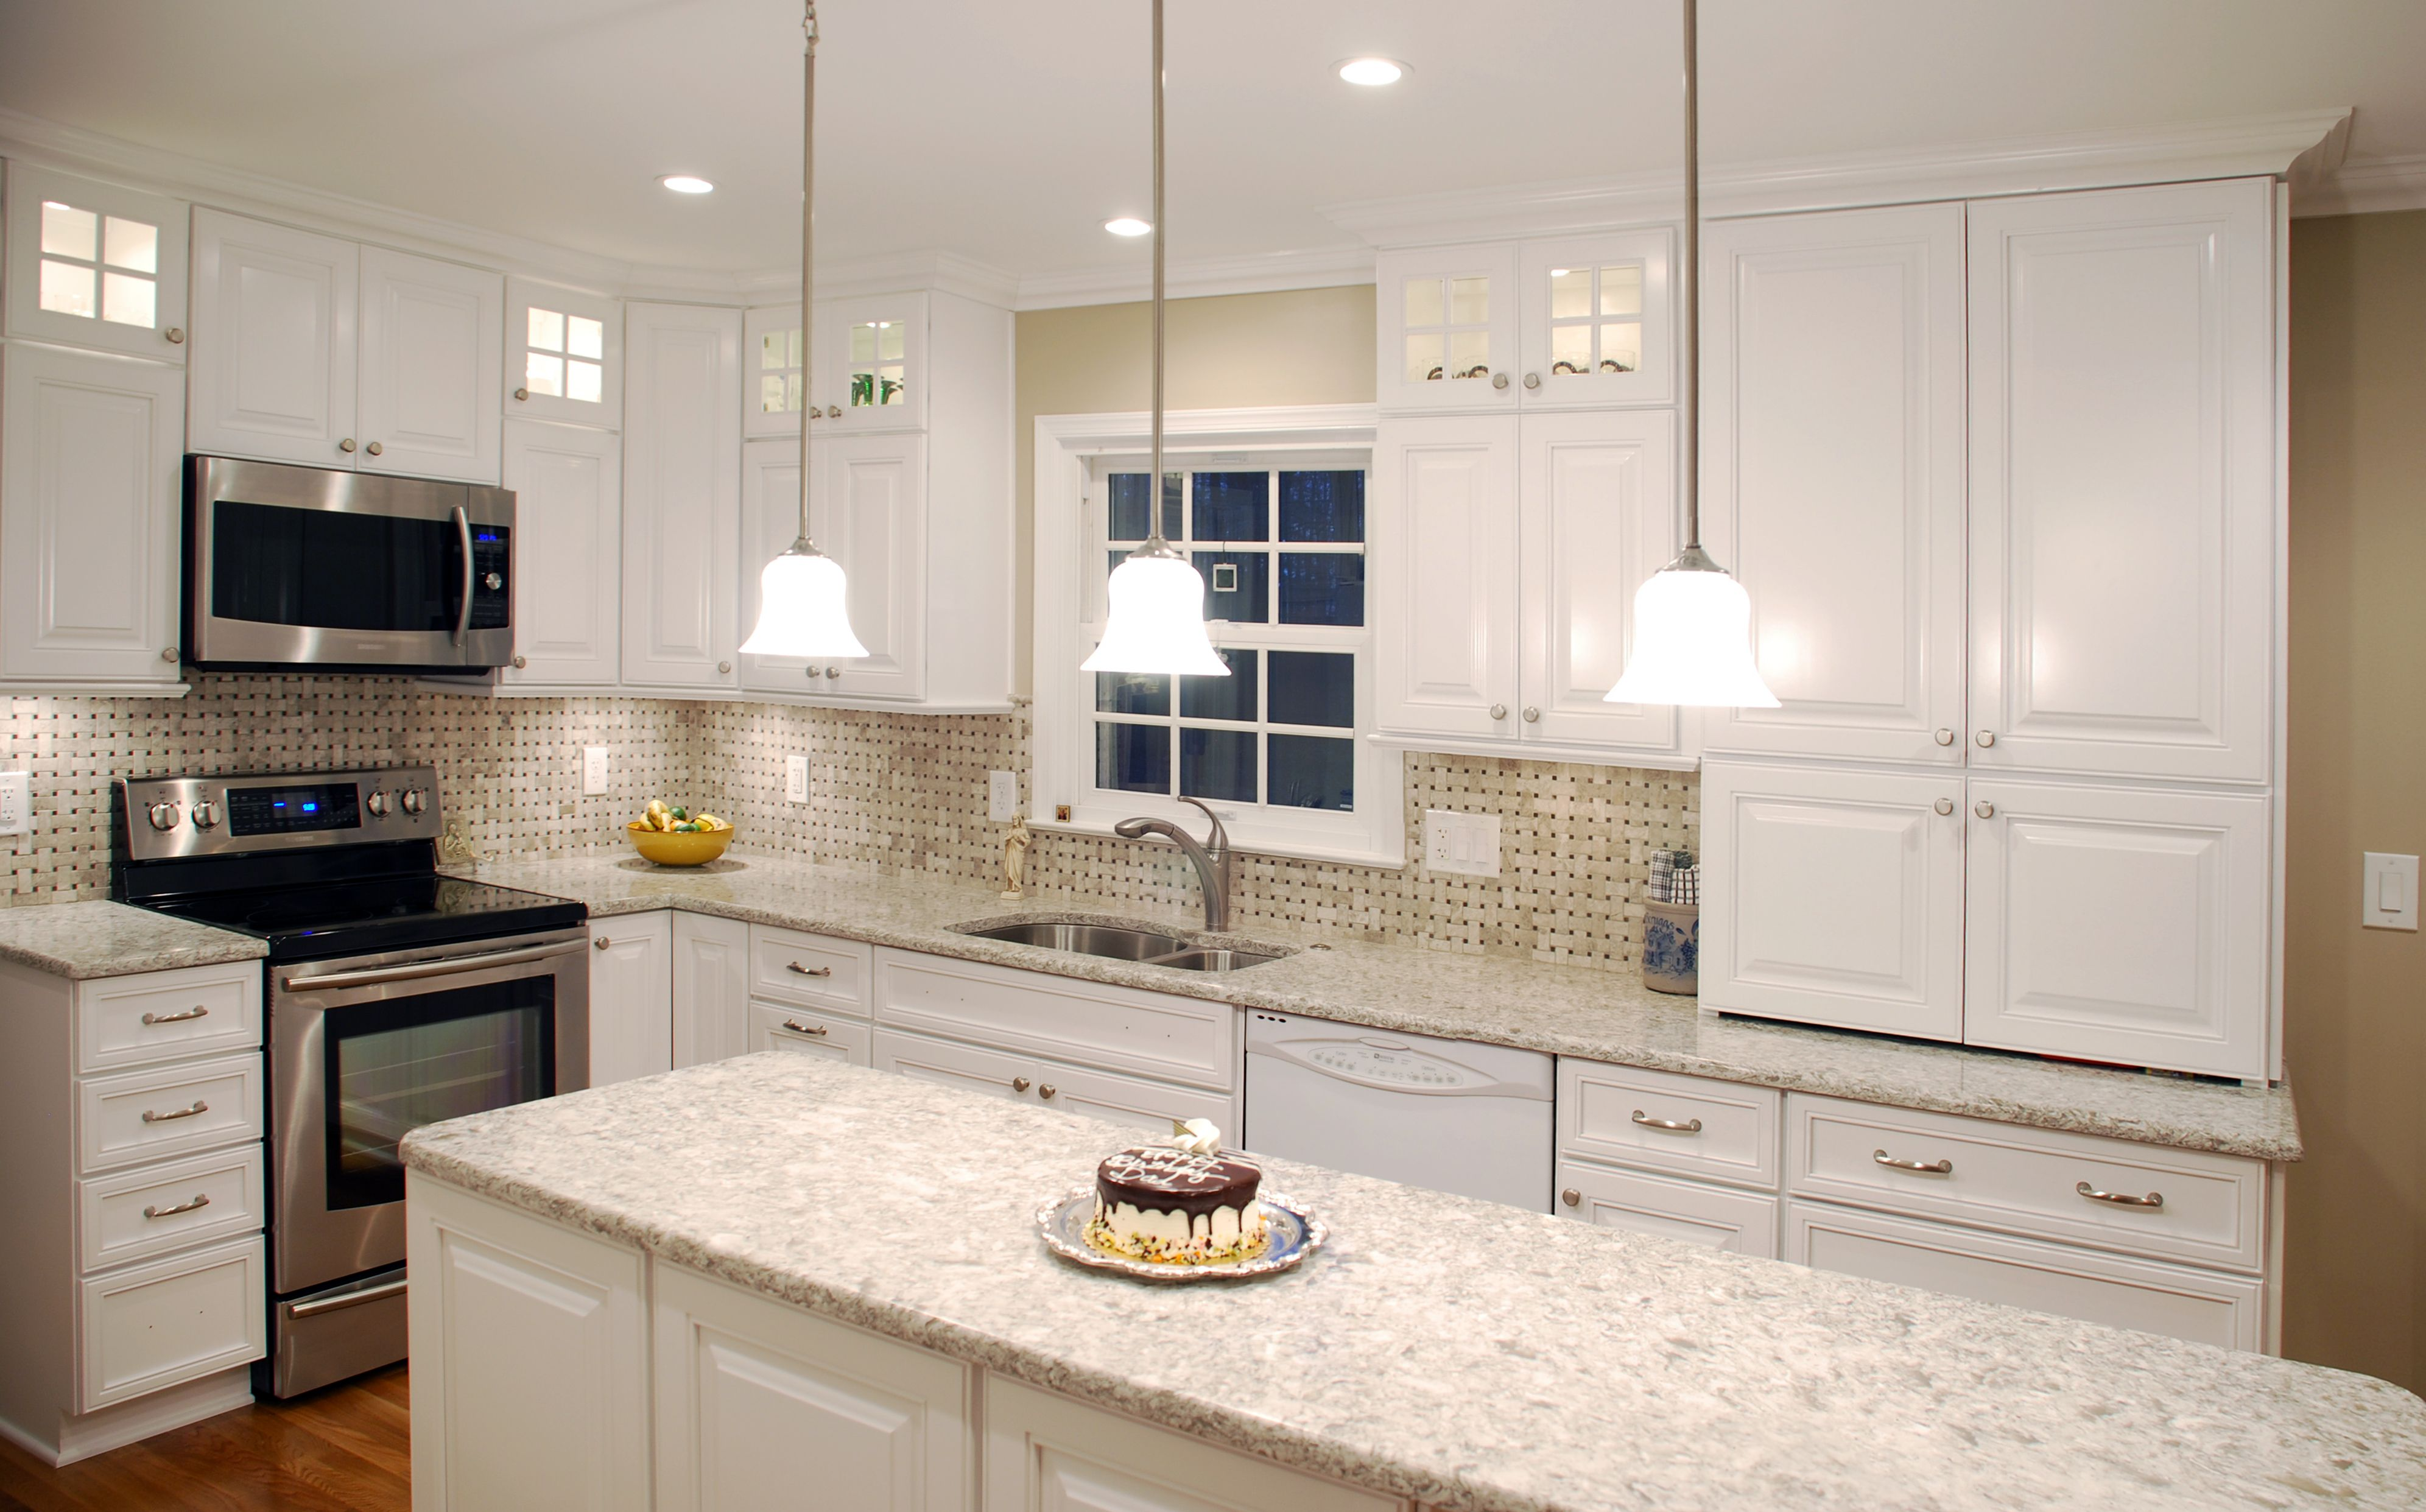 Design By Nicely Done Kitchens U0026 Baths Of VA. Features Holiday Kitchens  Riverside Paint Grade